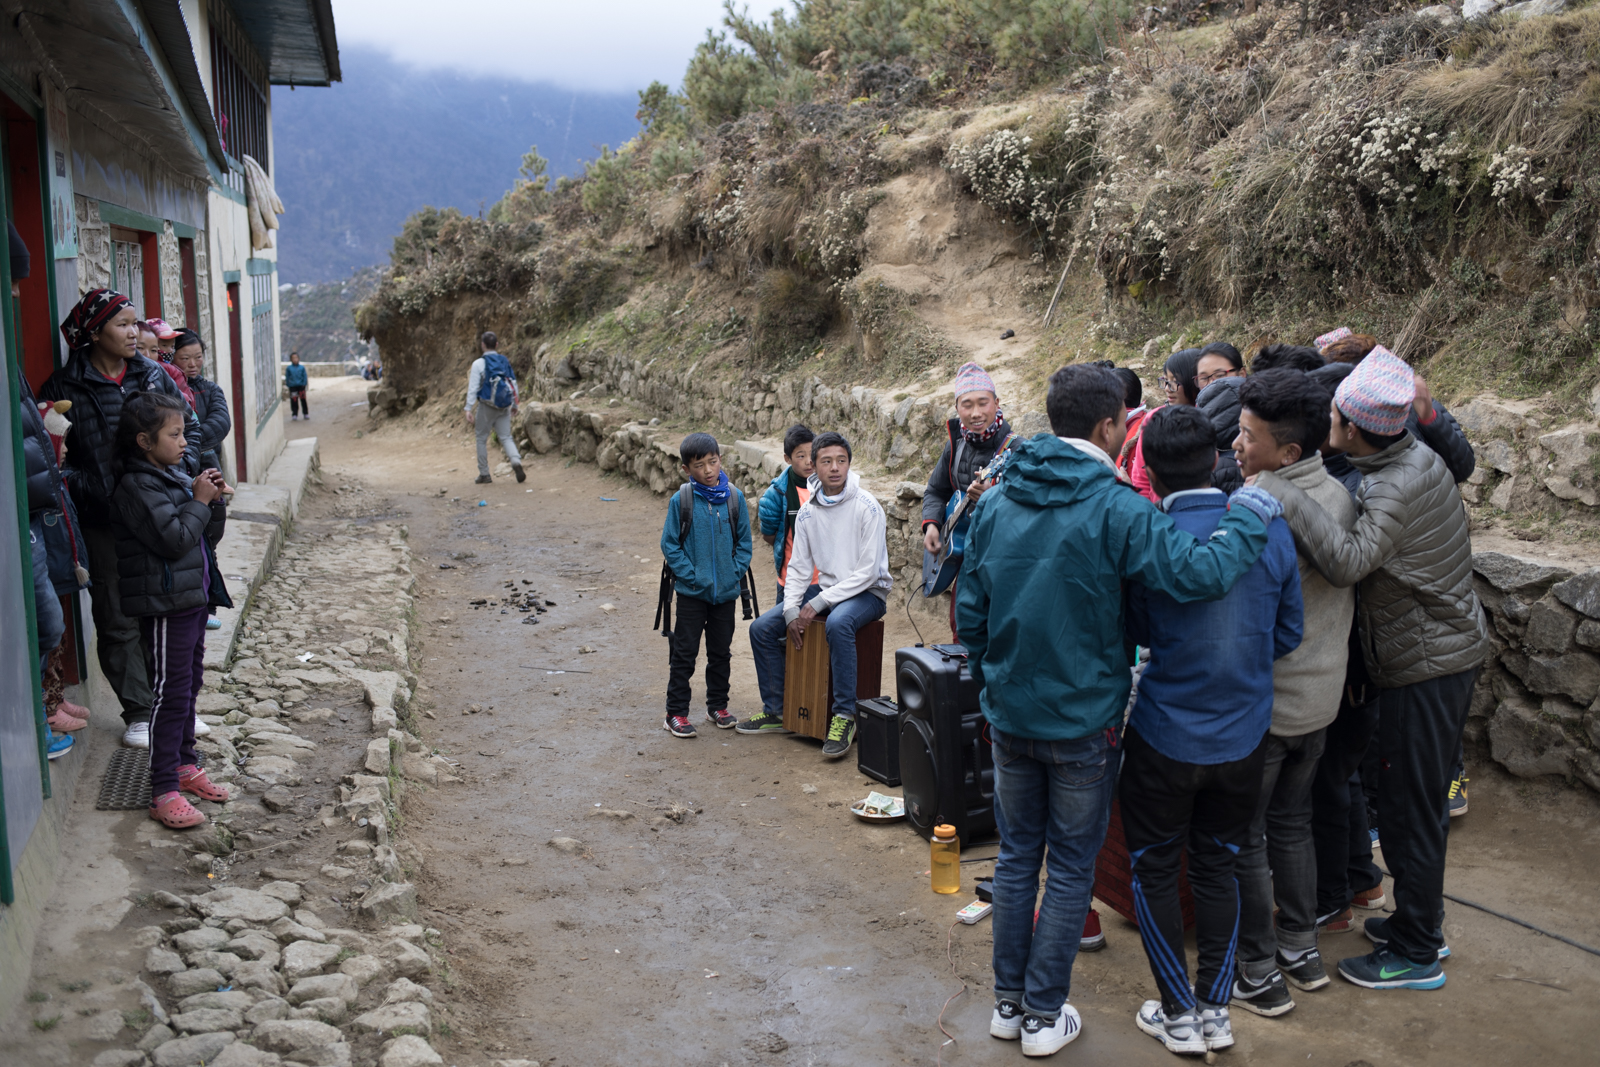 A group of young kids gathered together on the outskirts of town to pay music for a small group of locals.  I ran into them as I returned from an acclimatization hike.  They had mics, electric guitars and were holding each other as they sang.